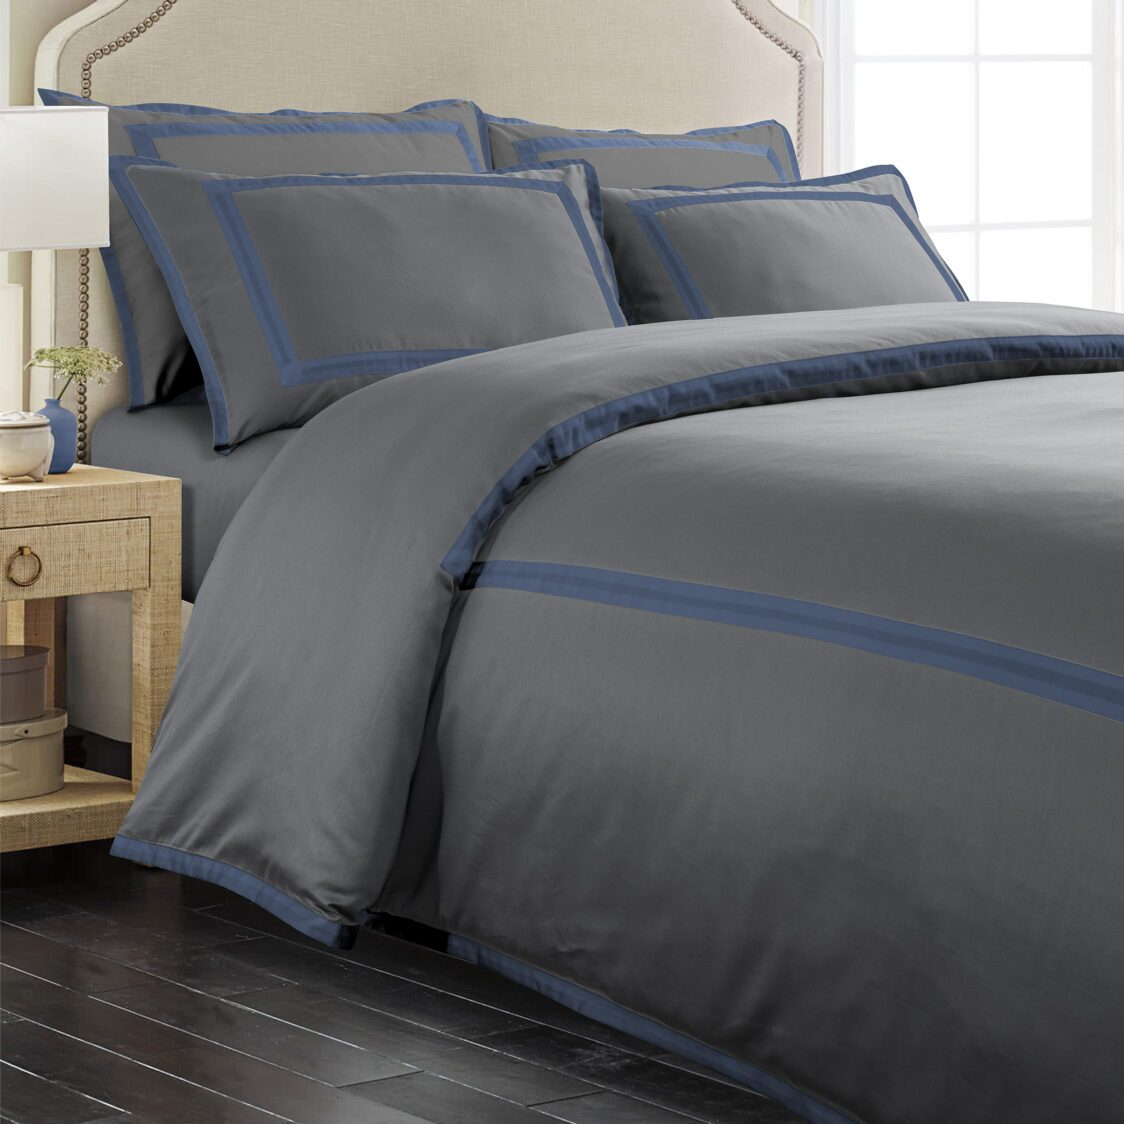 Mmaison Hotel Collection Orville King Fitted Sheet - Charcoal